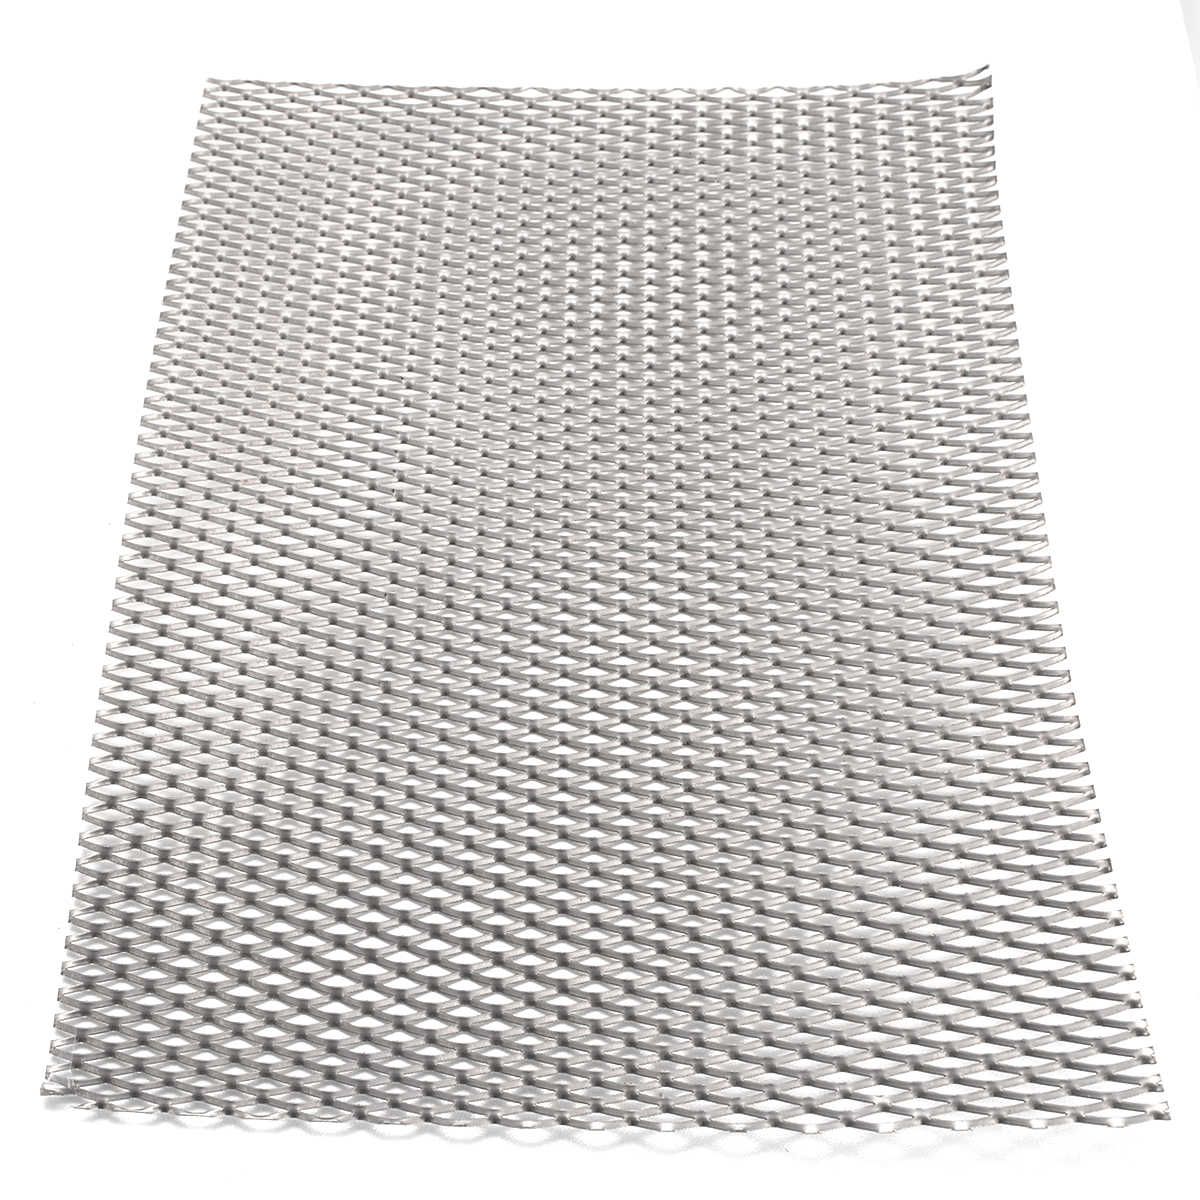 1pc Mayitr Practical Metal Titanium Mesh Sheet Heat Corrosion Resistance Silver Perforated Expanded Plate 200mm*300mm*0.5mm